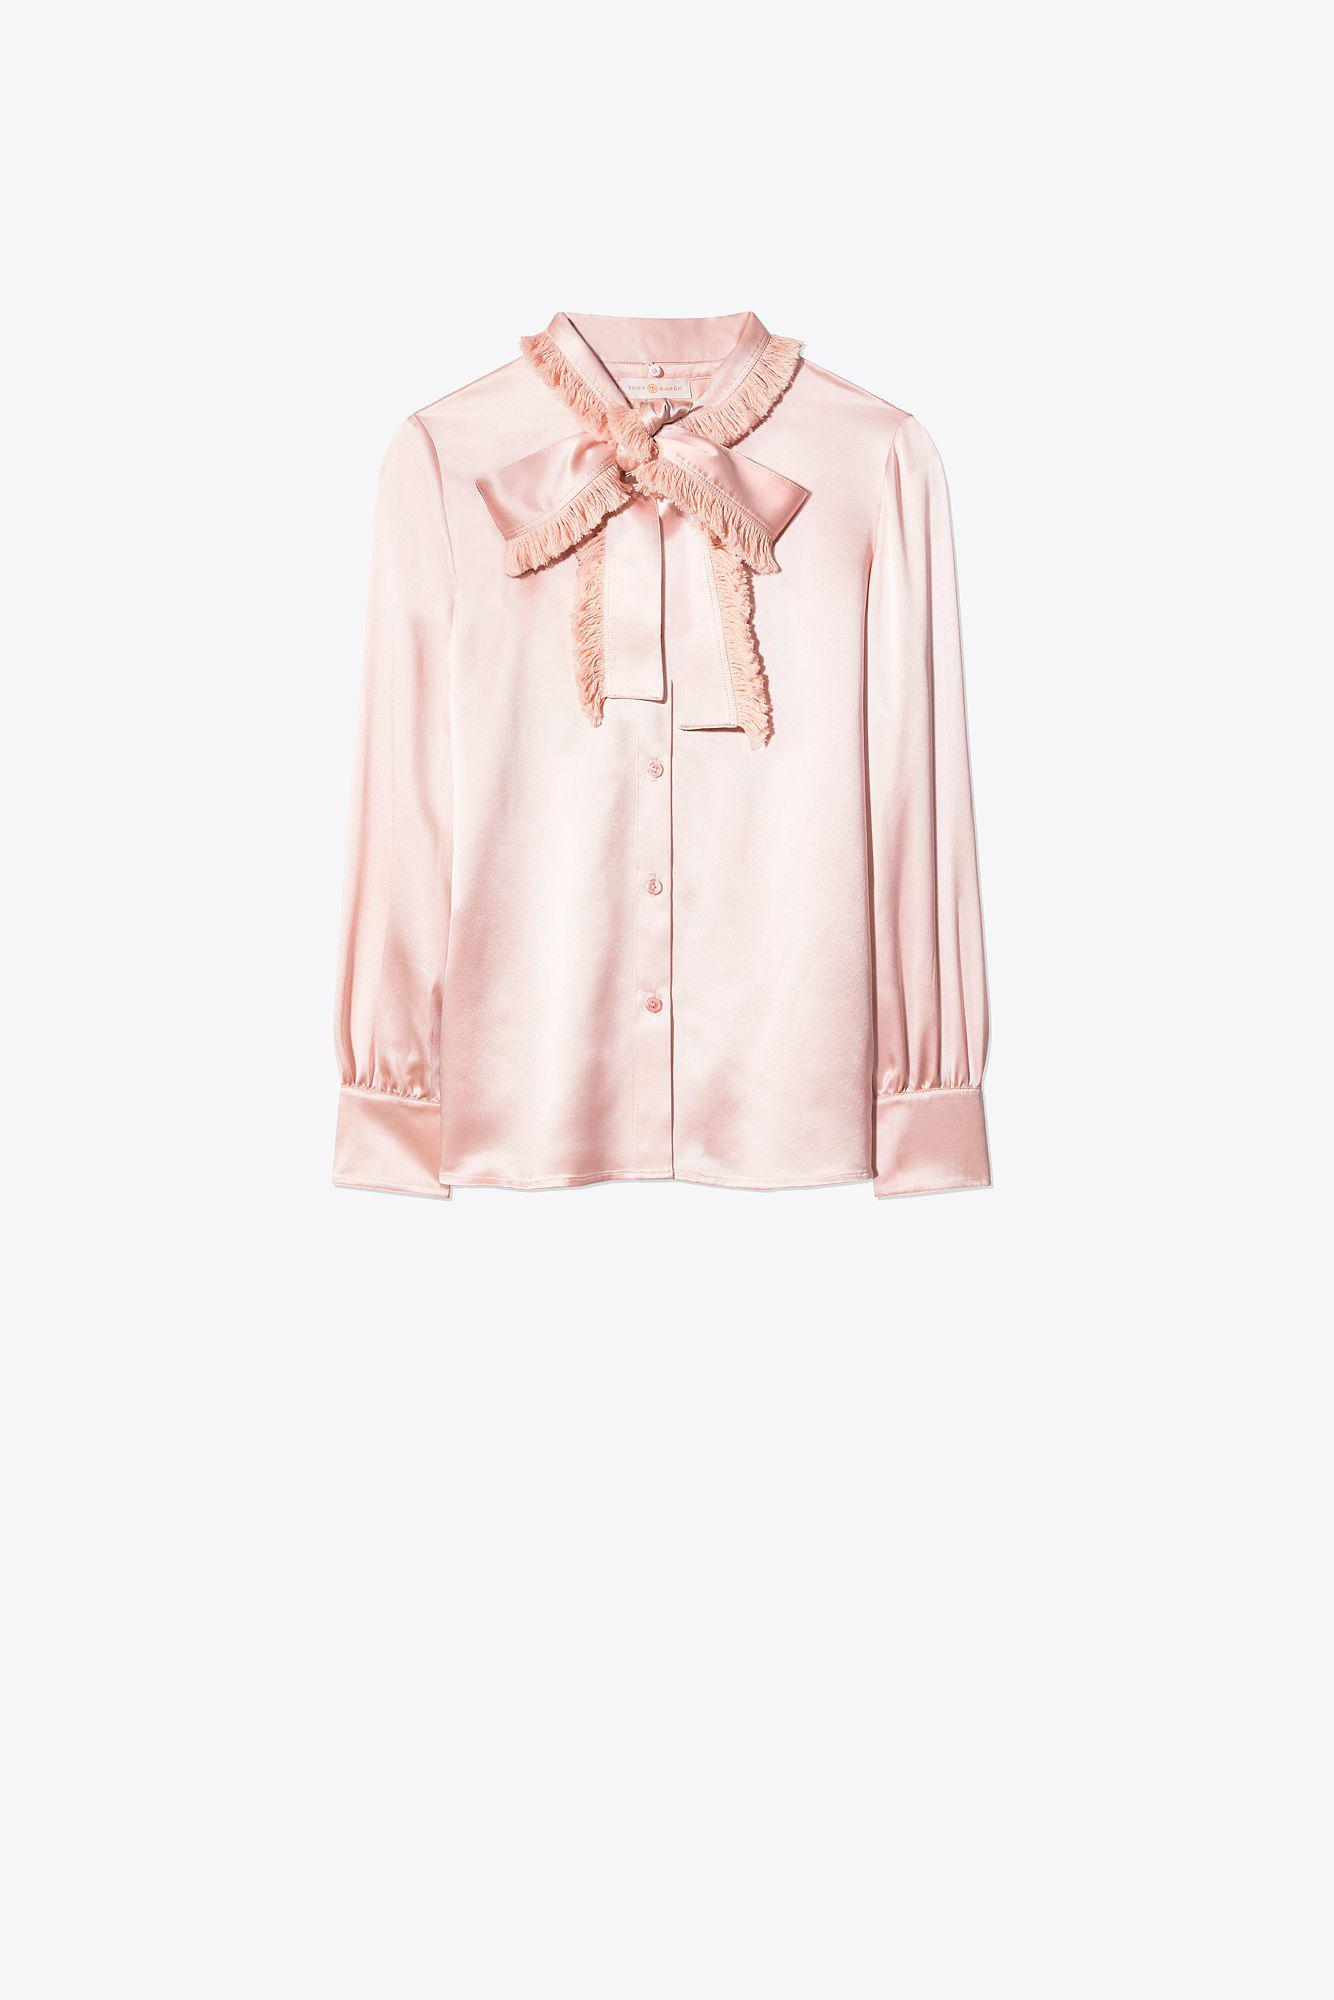 386638d3d81 Tory Burch - Pink Fringe Bow Blouse - Lyst. View fullscreen